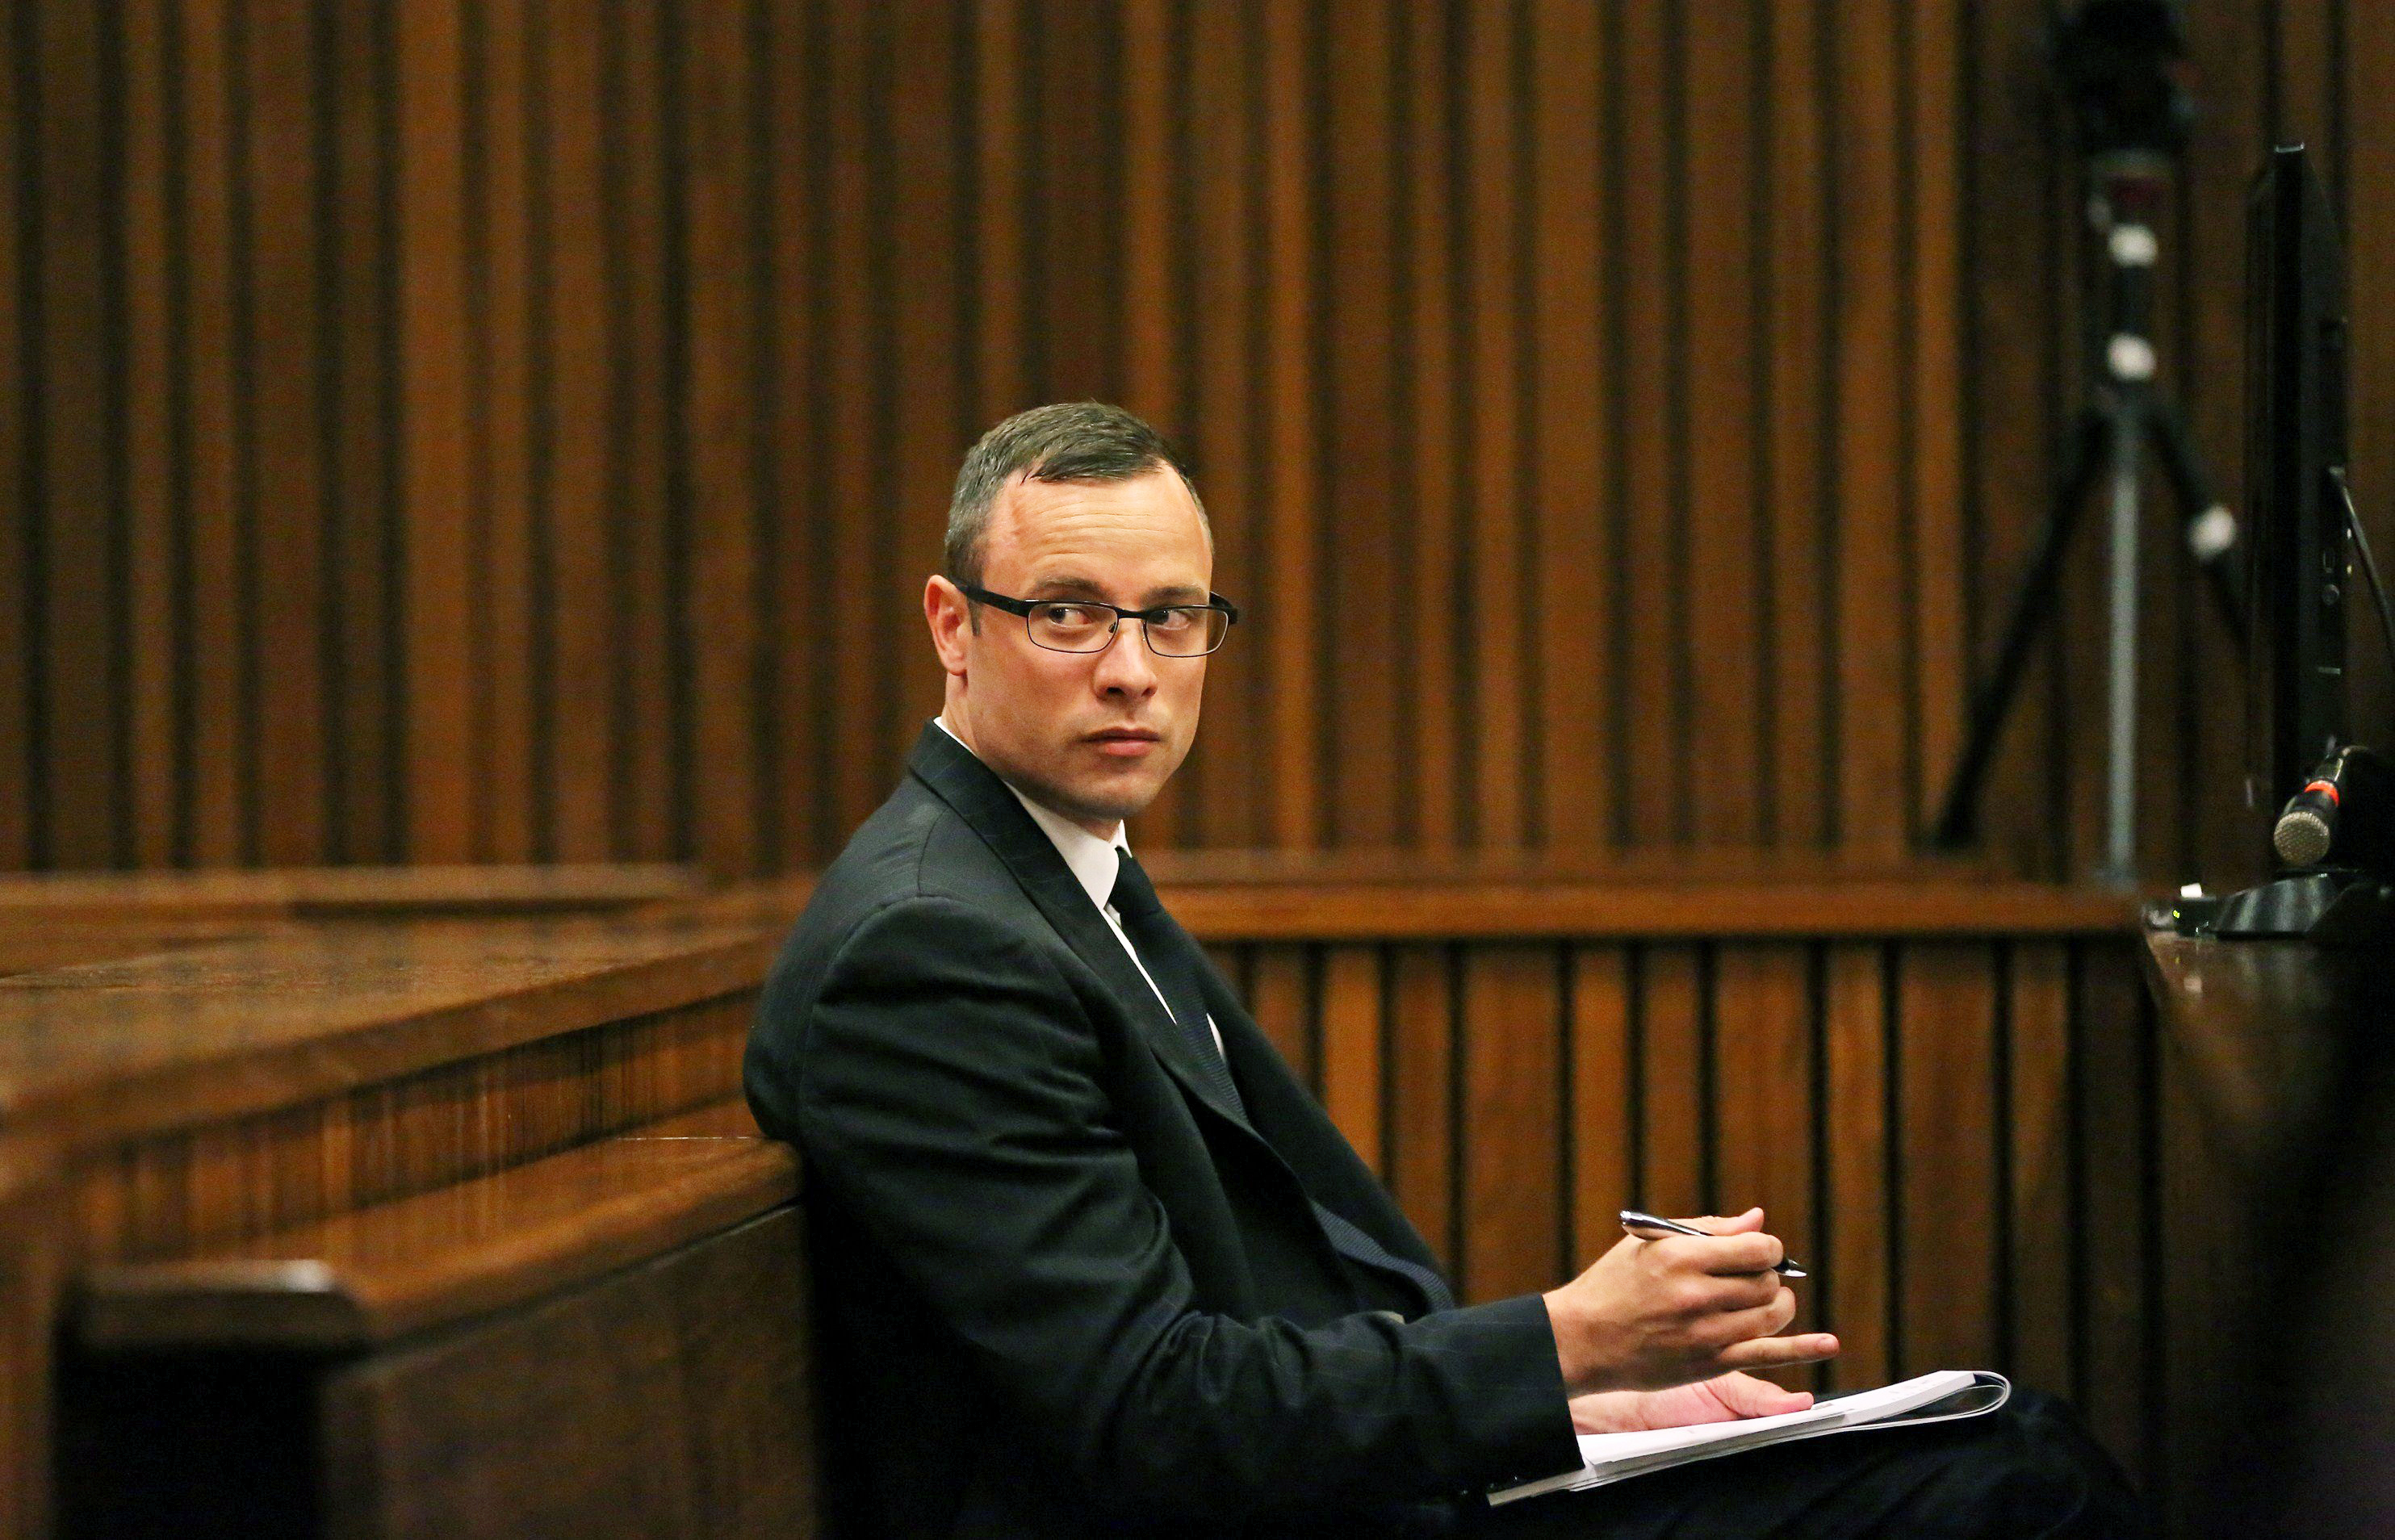 Paralympic track star Oscar Pistorius sits in the dock during his trial for the murder of his girlfriend Reeva Steenkamp, at the North Gauteng High Court in Pretoria, on March 25, 2014.